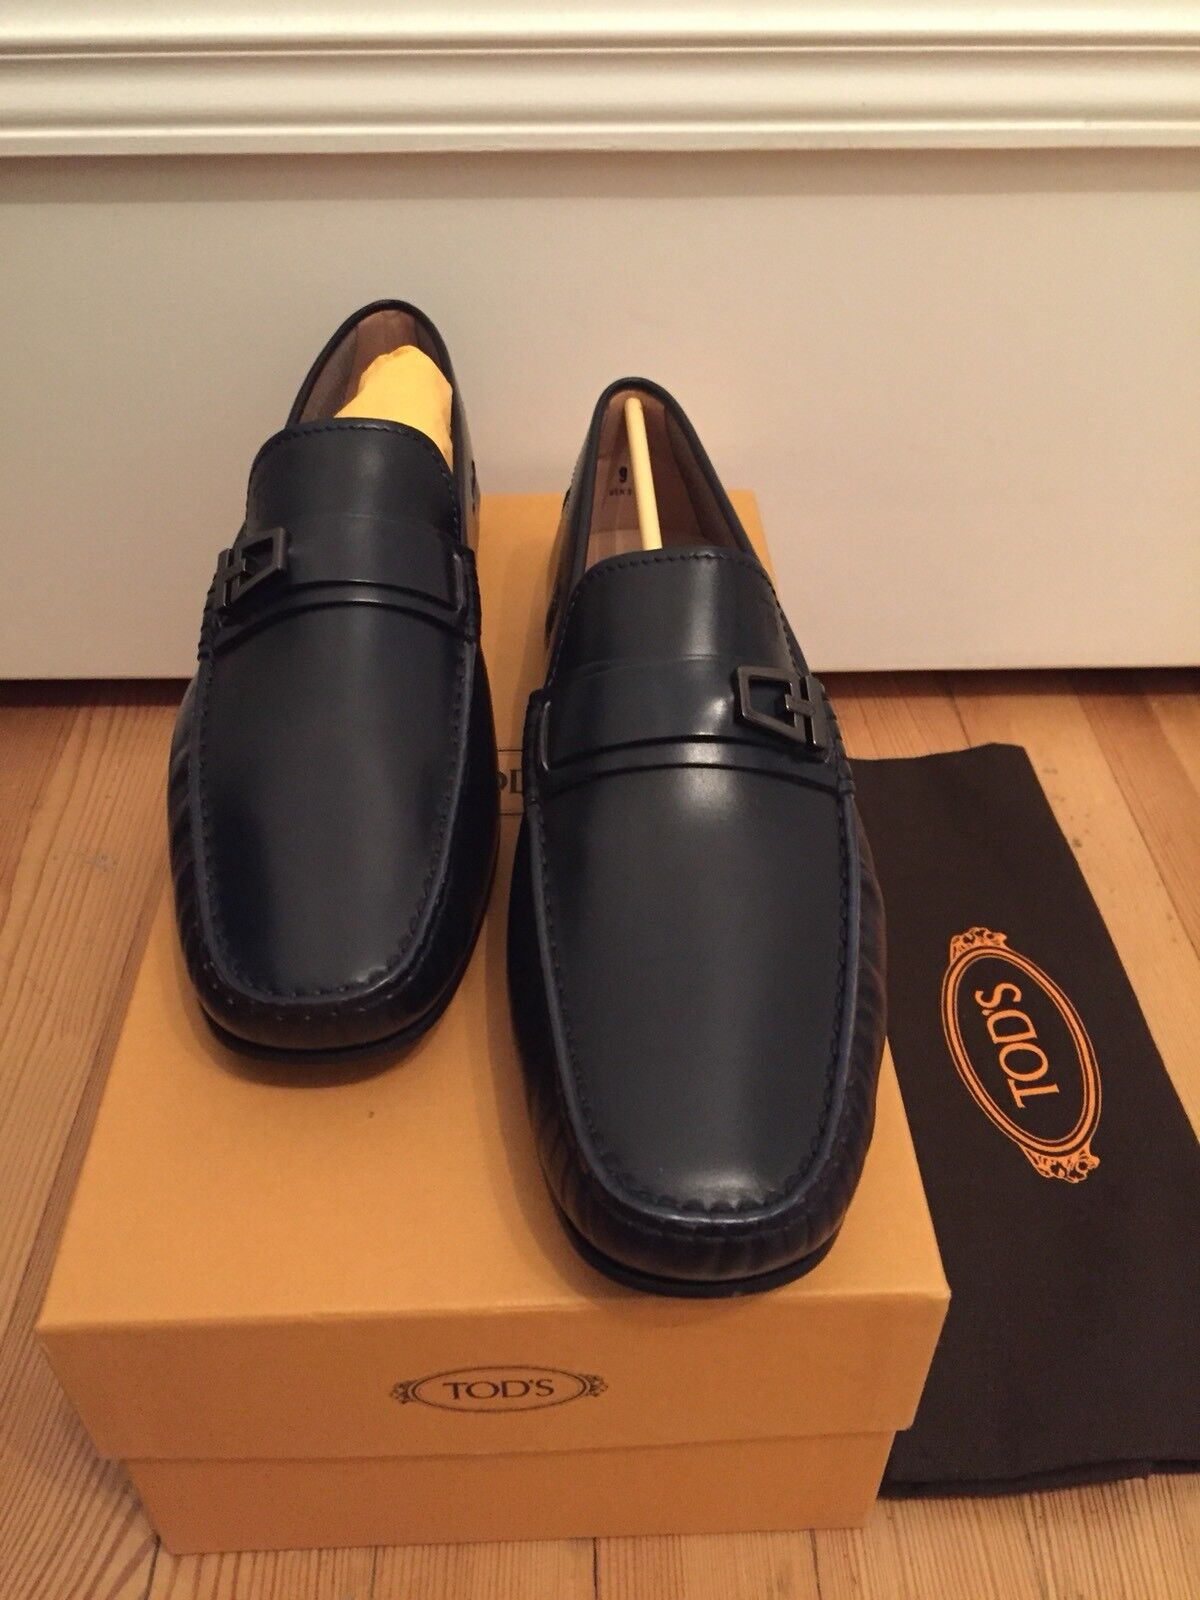 Uomo MOCASSINI 42,5 di TODS TODS TODS NUOVO€ 445,- 89b97d